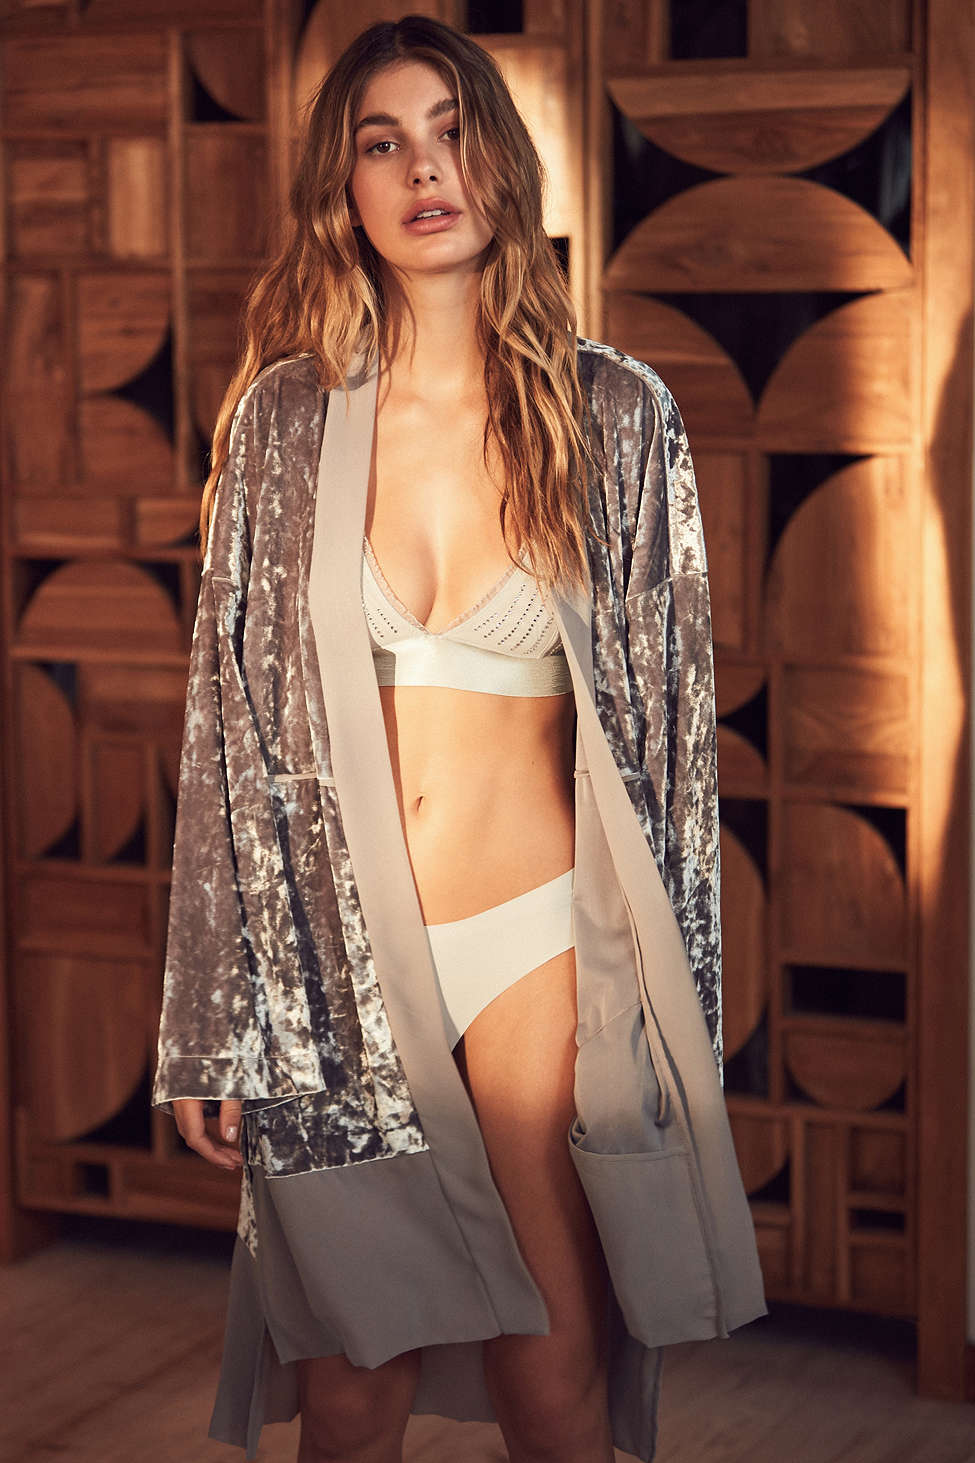 Camila Morrone photo 115 of 223 pics, wallpaper